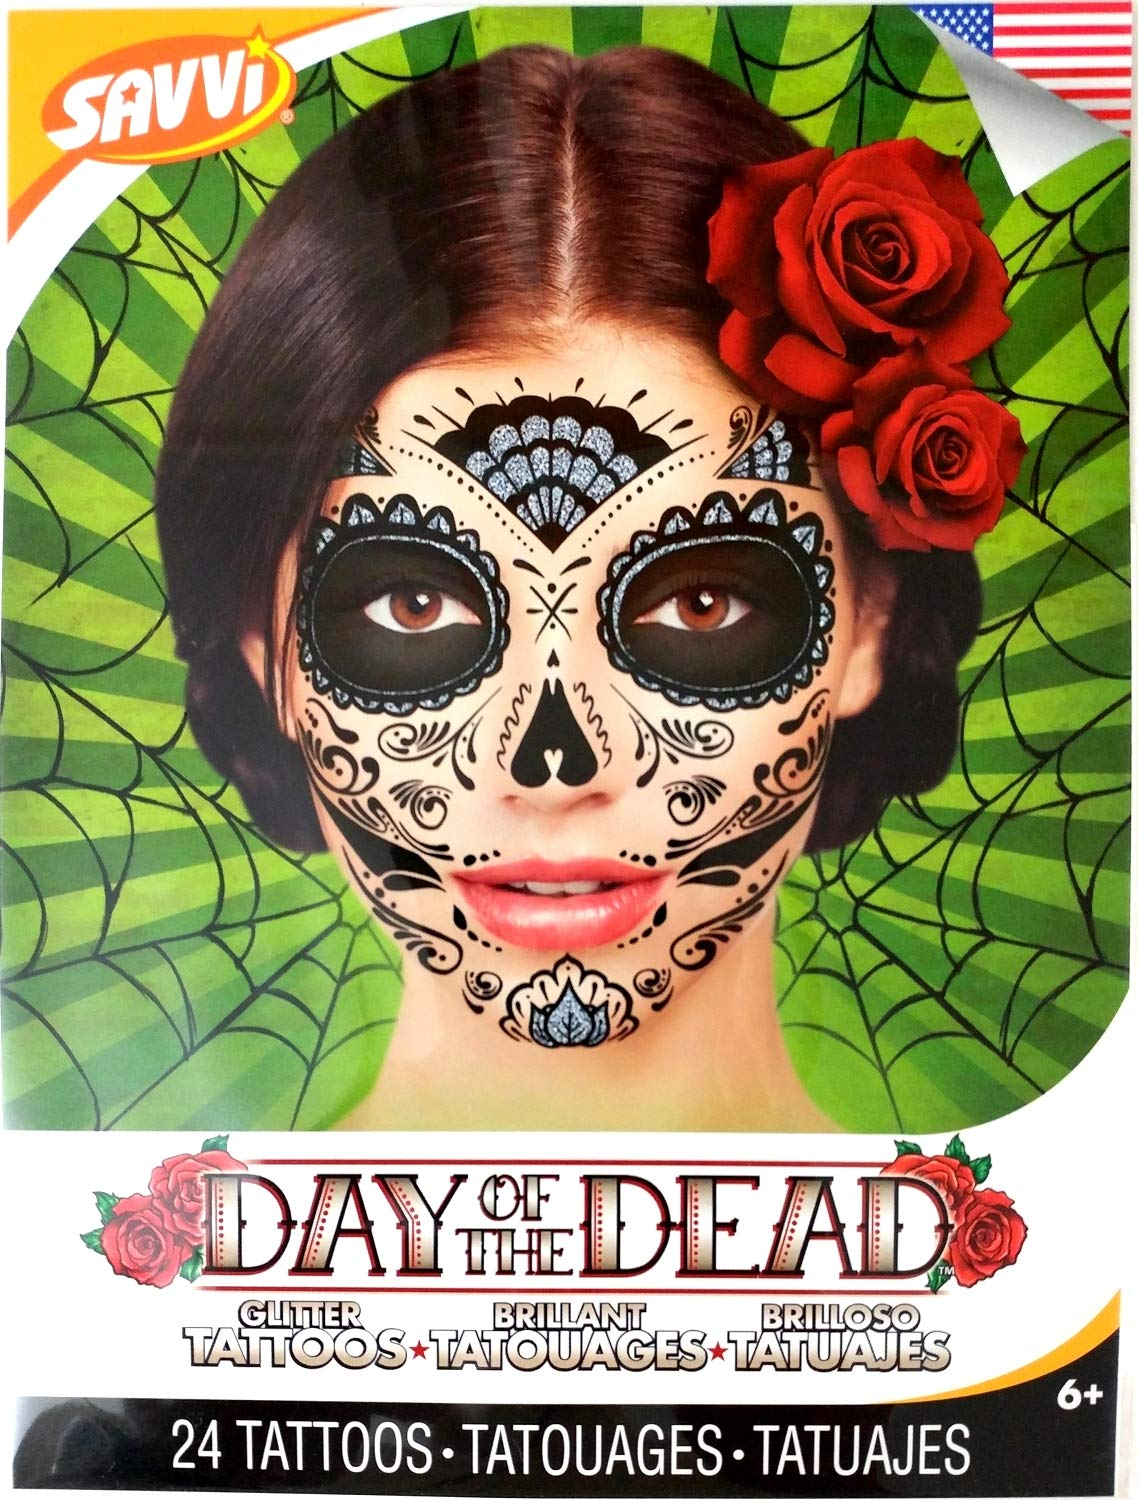 Black Glitter Skeleton Day of the Dead Temporary Face Tattoo Kit: Men or Women - 2 Kits Savvi Day of the Dead Face Tattoos